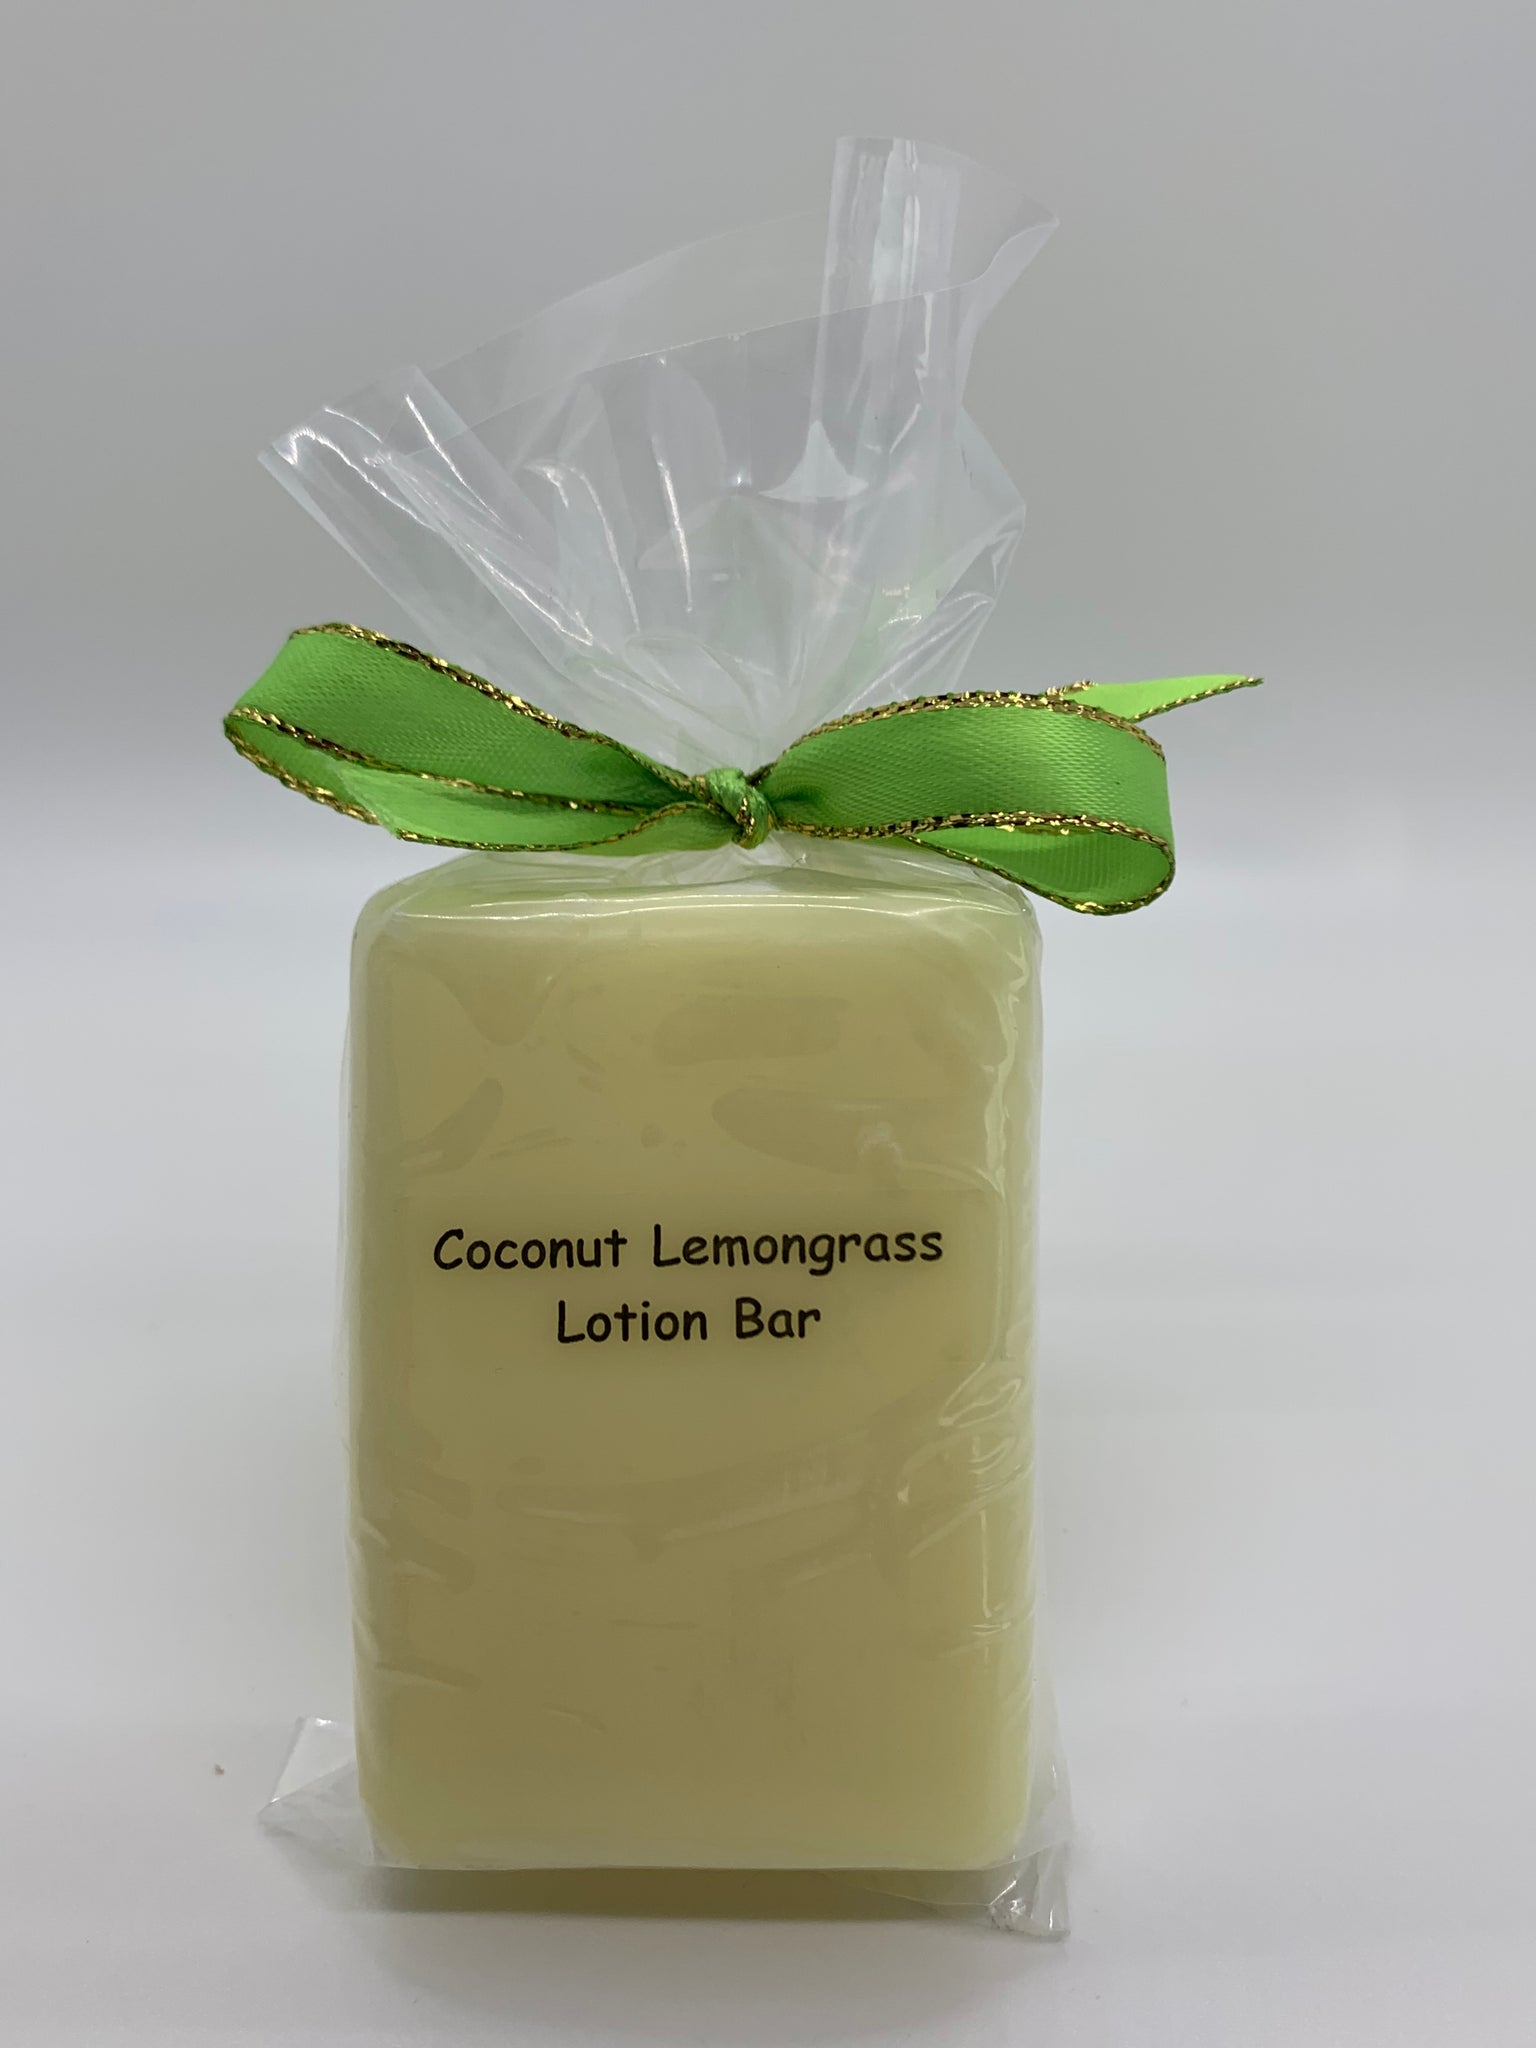 Coconut Lemongrass Lotion Bar